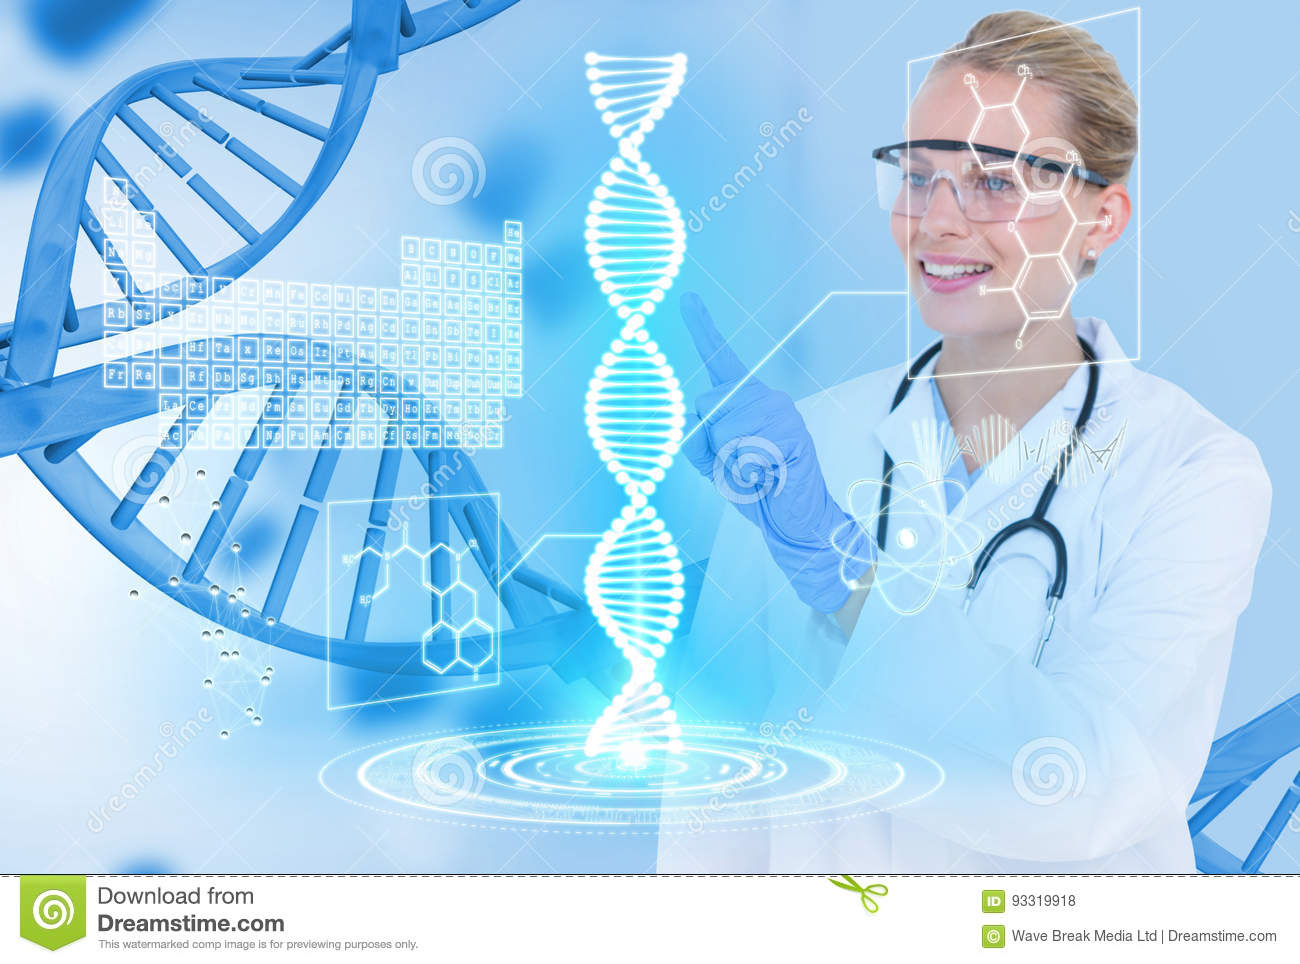 Medical models wearing glasses and white coat against DNA graphics background